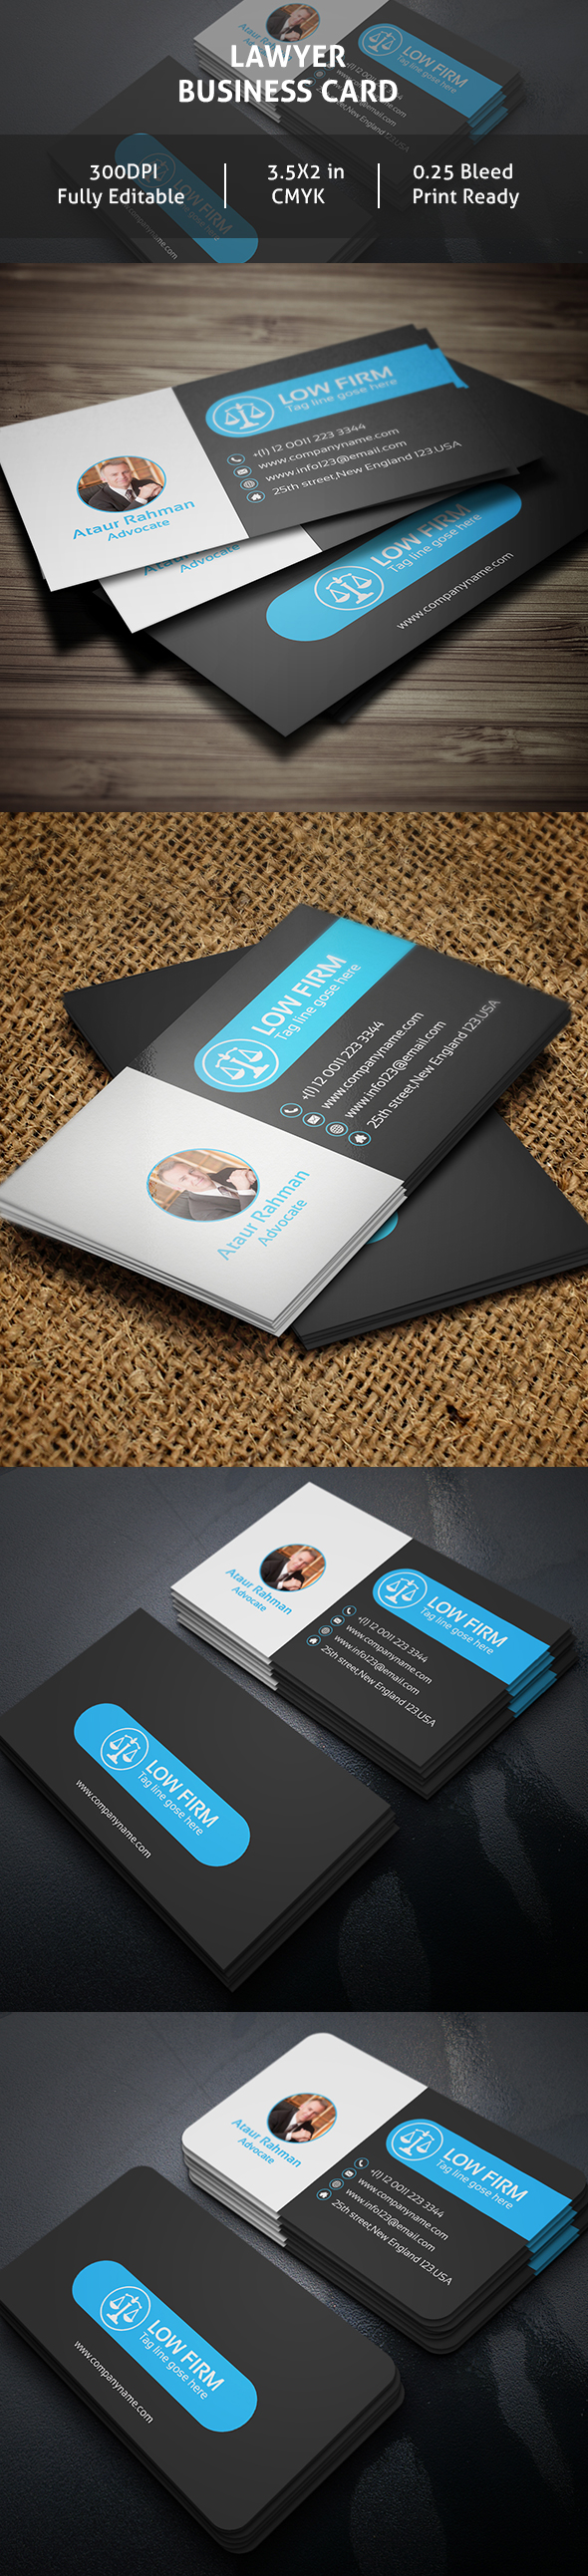 Free lawyer business card on behance reheart